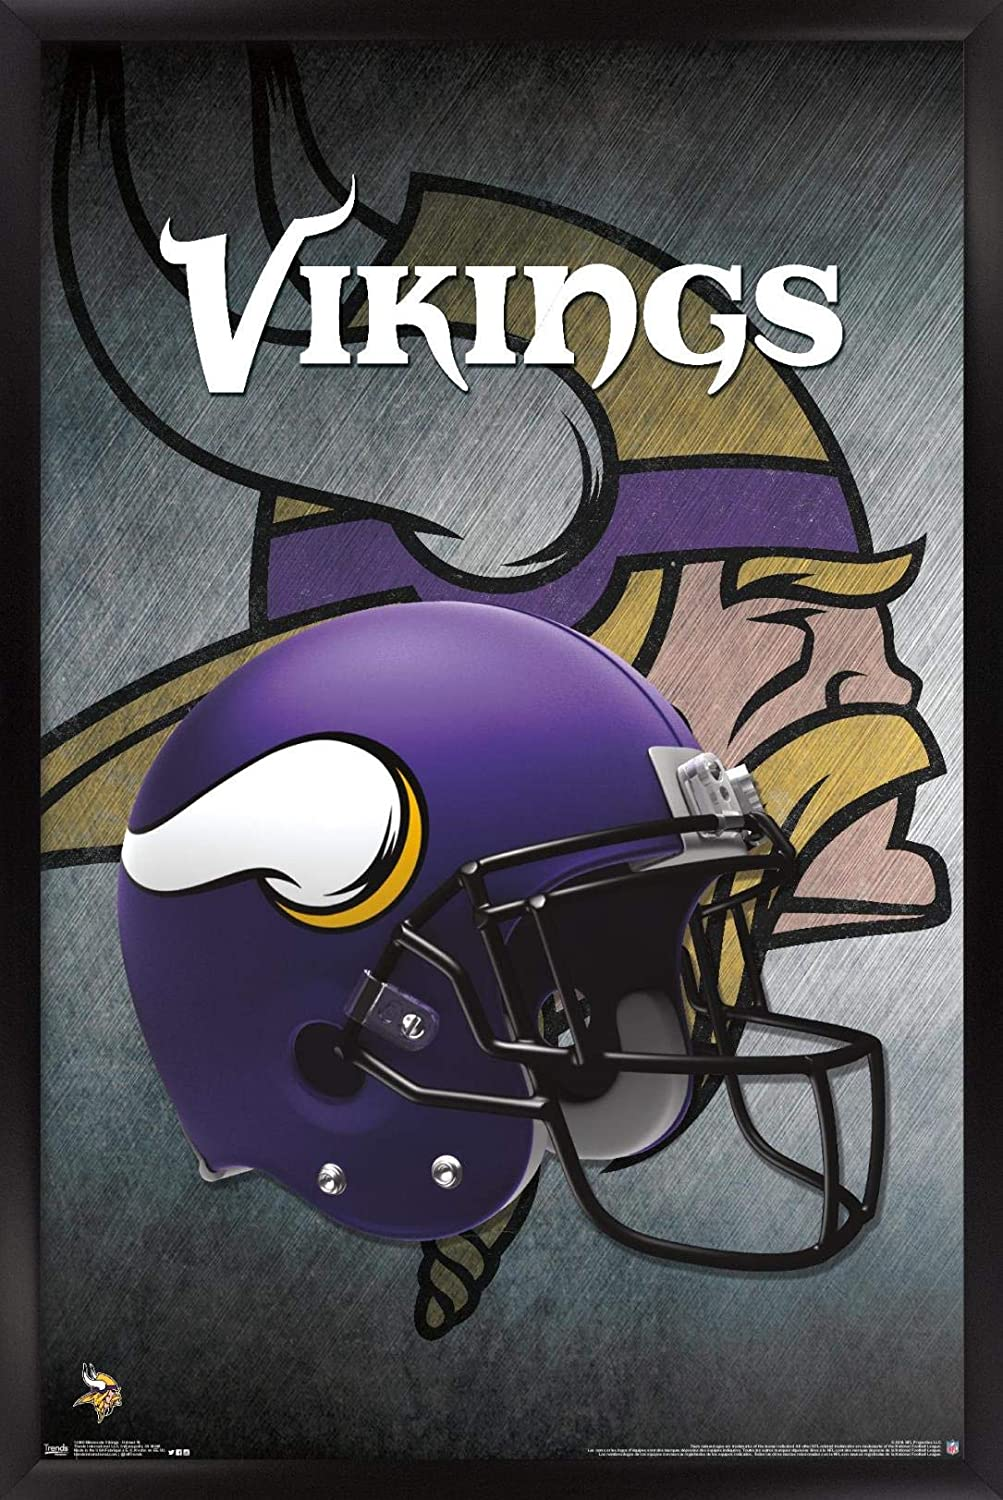 "Trends International NFL Minnesota VIkings - Helmet 16 Wall Poster, 22.375"" x 34"", Black Framed Version"